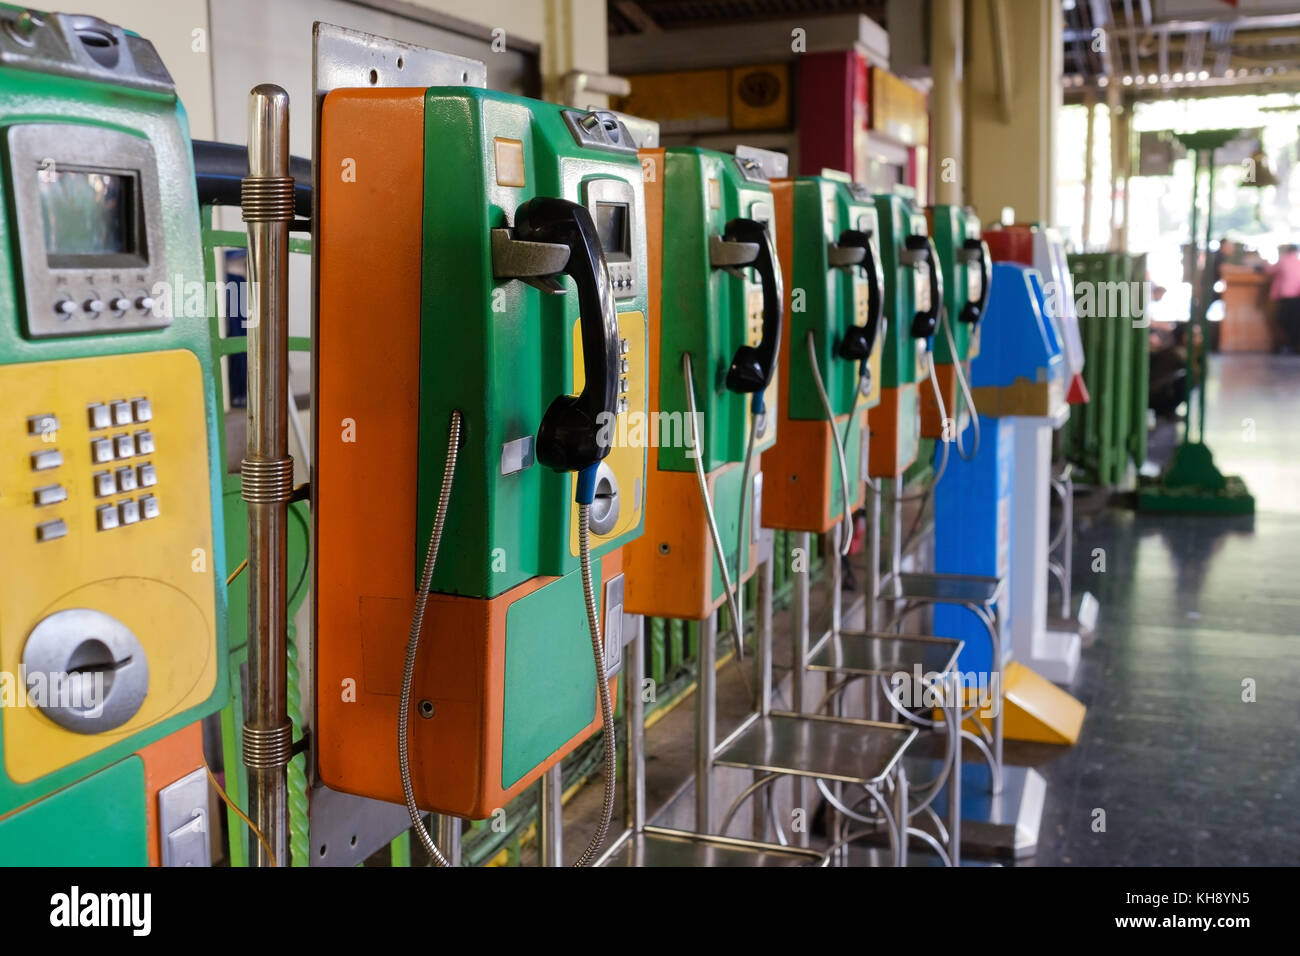 Several public phones on street - Stock Image